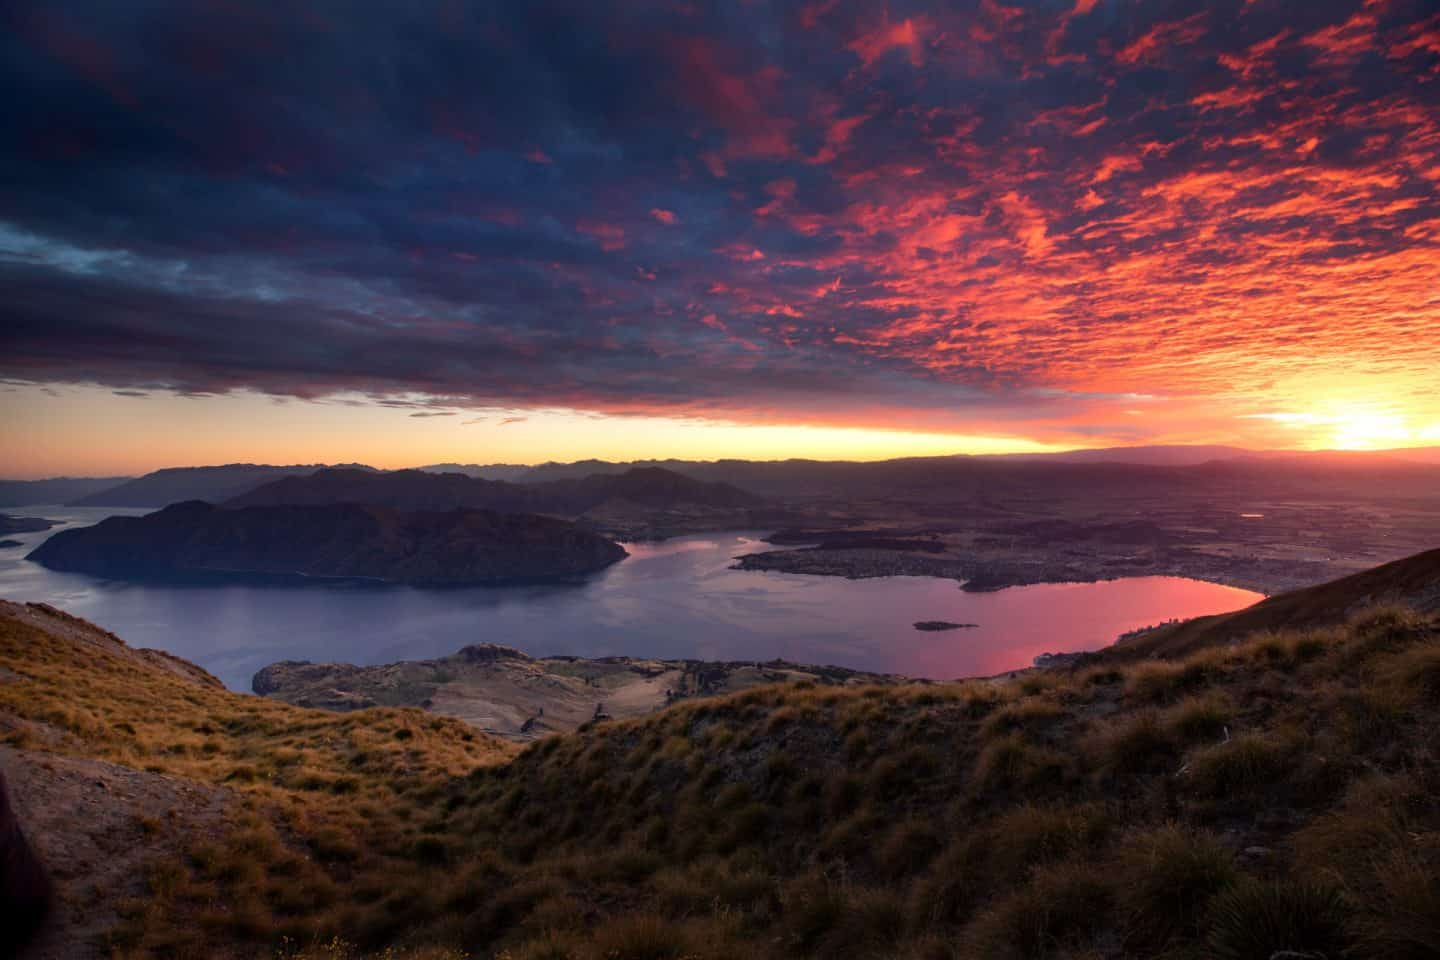 The clouds ignite with color in this Roys Peak sunrise photograph.